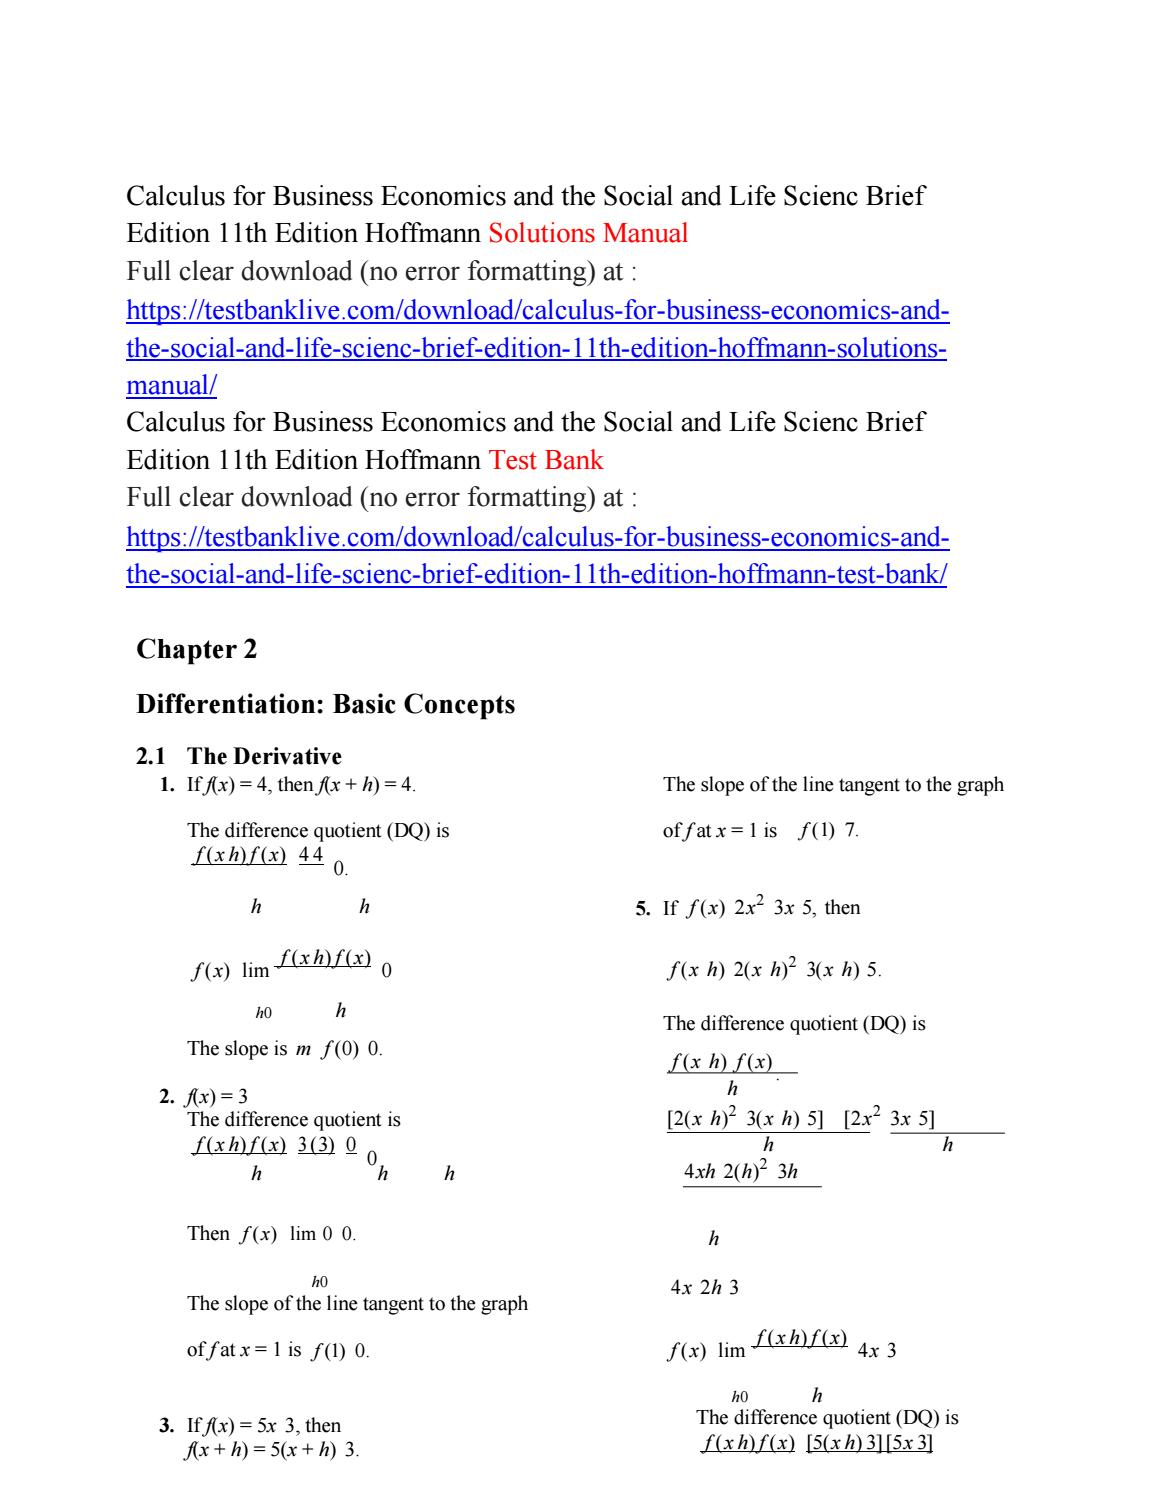 Calculus for business economics and the social and life scienc brief edition  11th edition hoffmann s by hazard333 - issuu